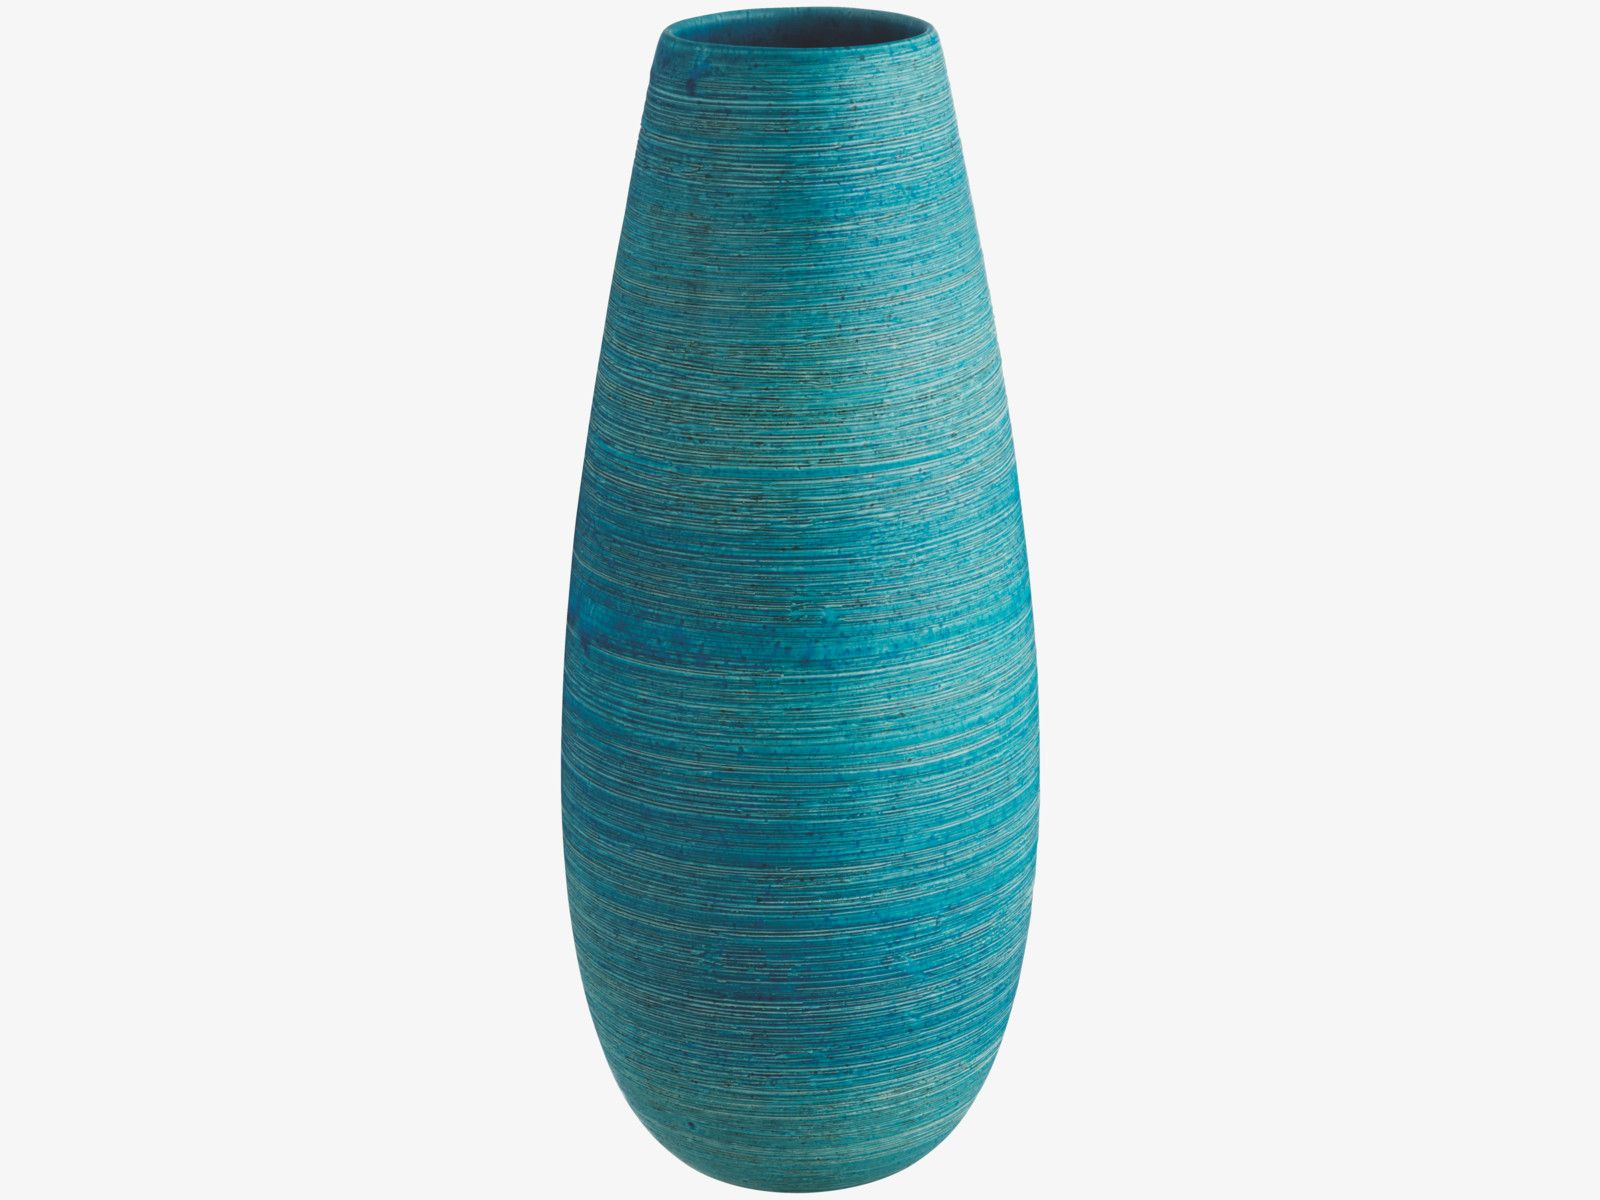 Turk Blues Ceramic Oversized Turquoise Ceramic Vase Ceramic Vase Blue Ceramics Vase